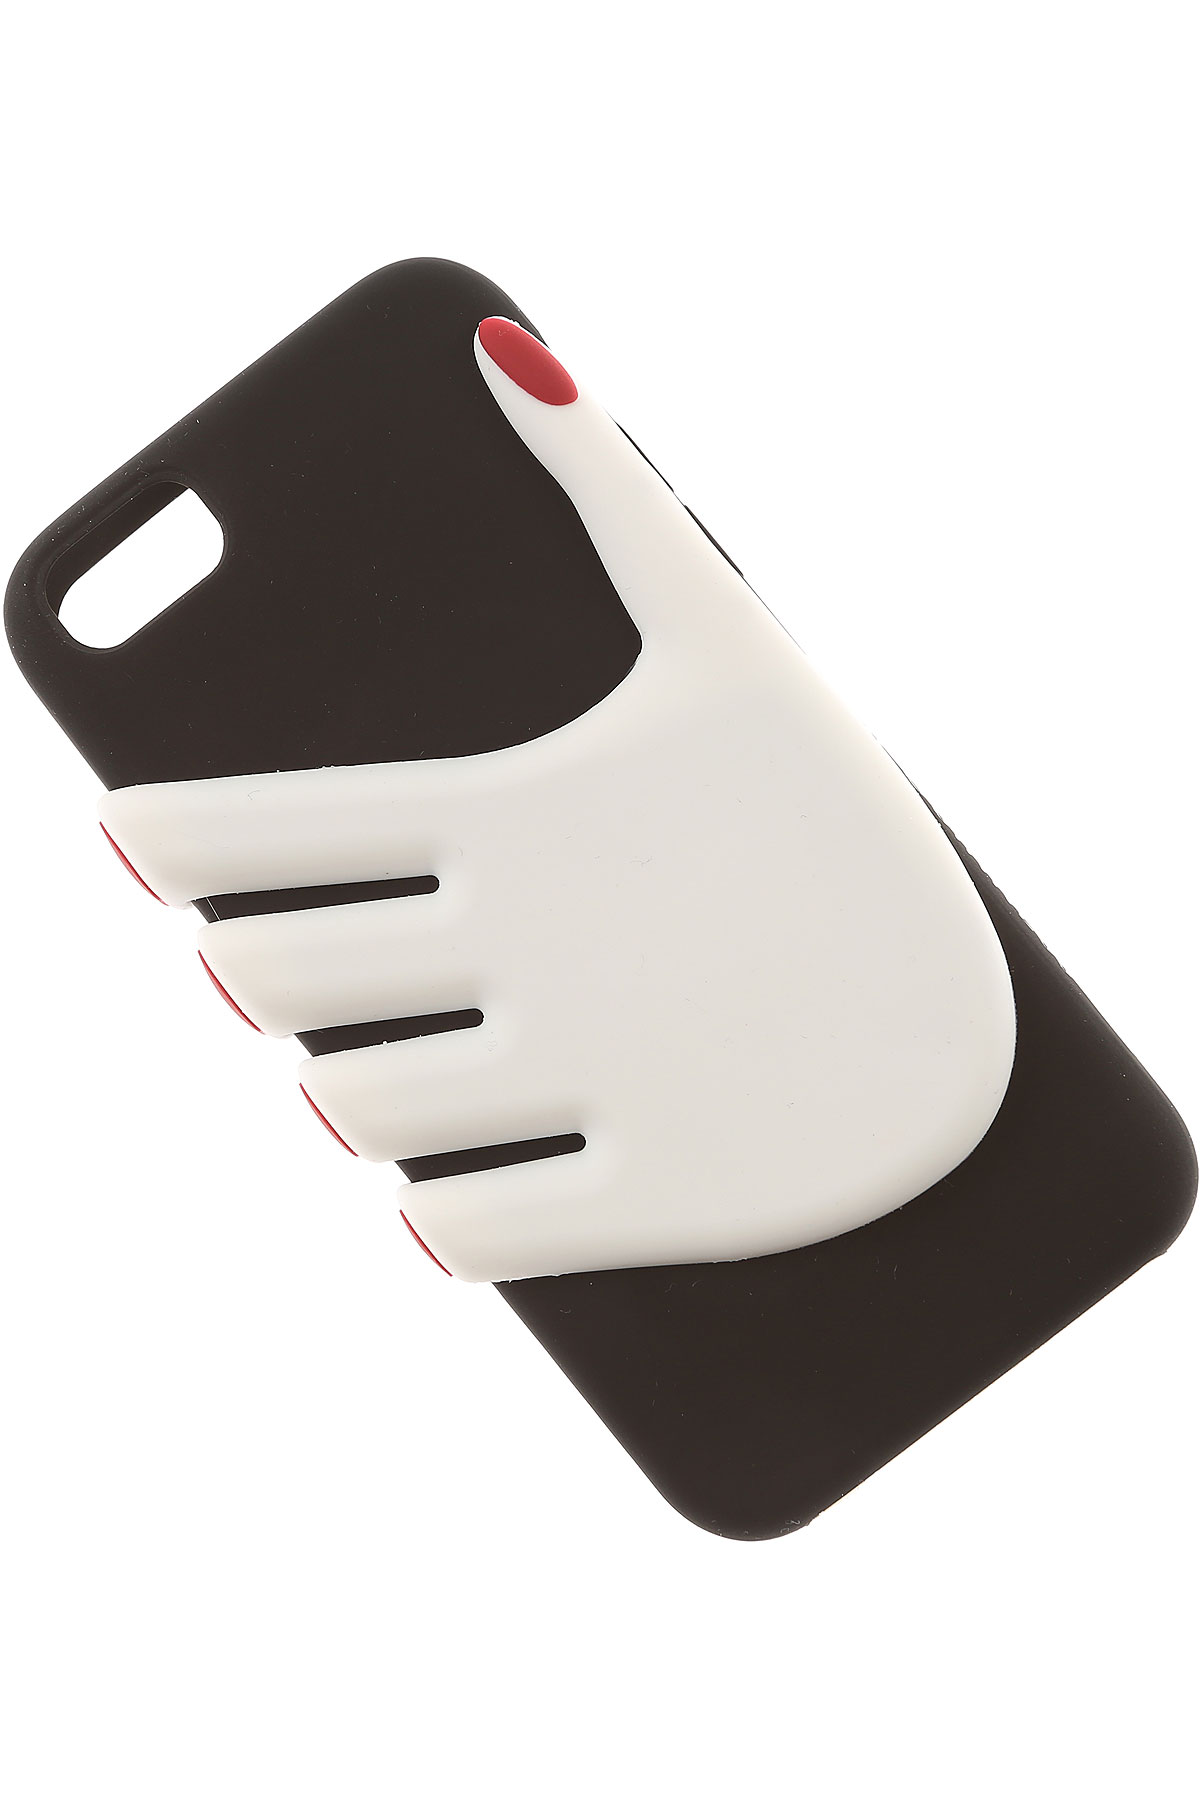 Lulu Guinness iPhone Cases On Sale, Iphone 6 And 7 Case, Black, Rubber, 2019